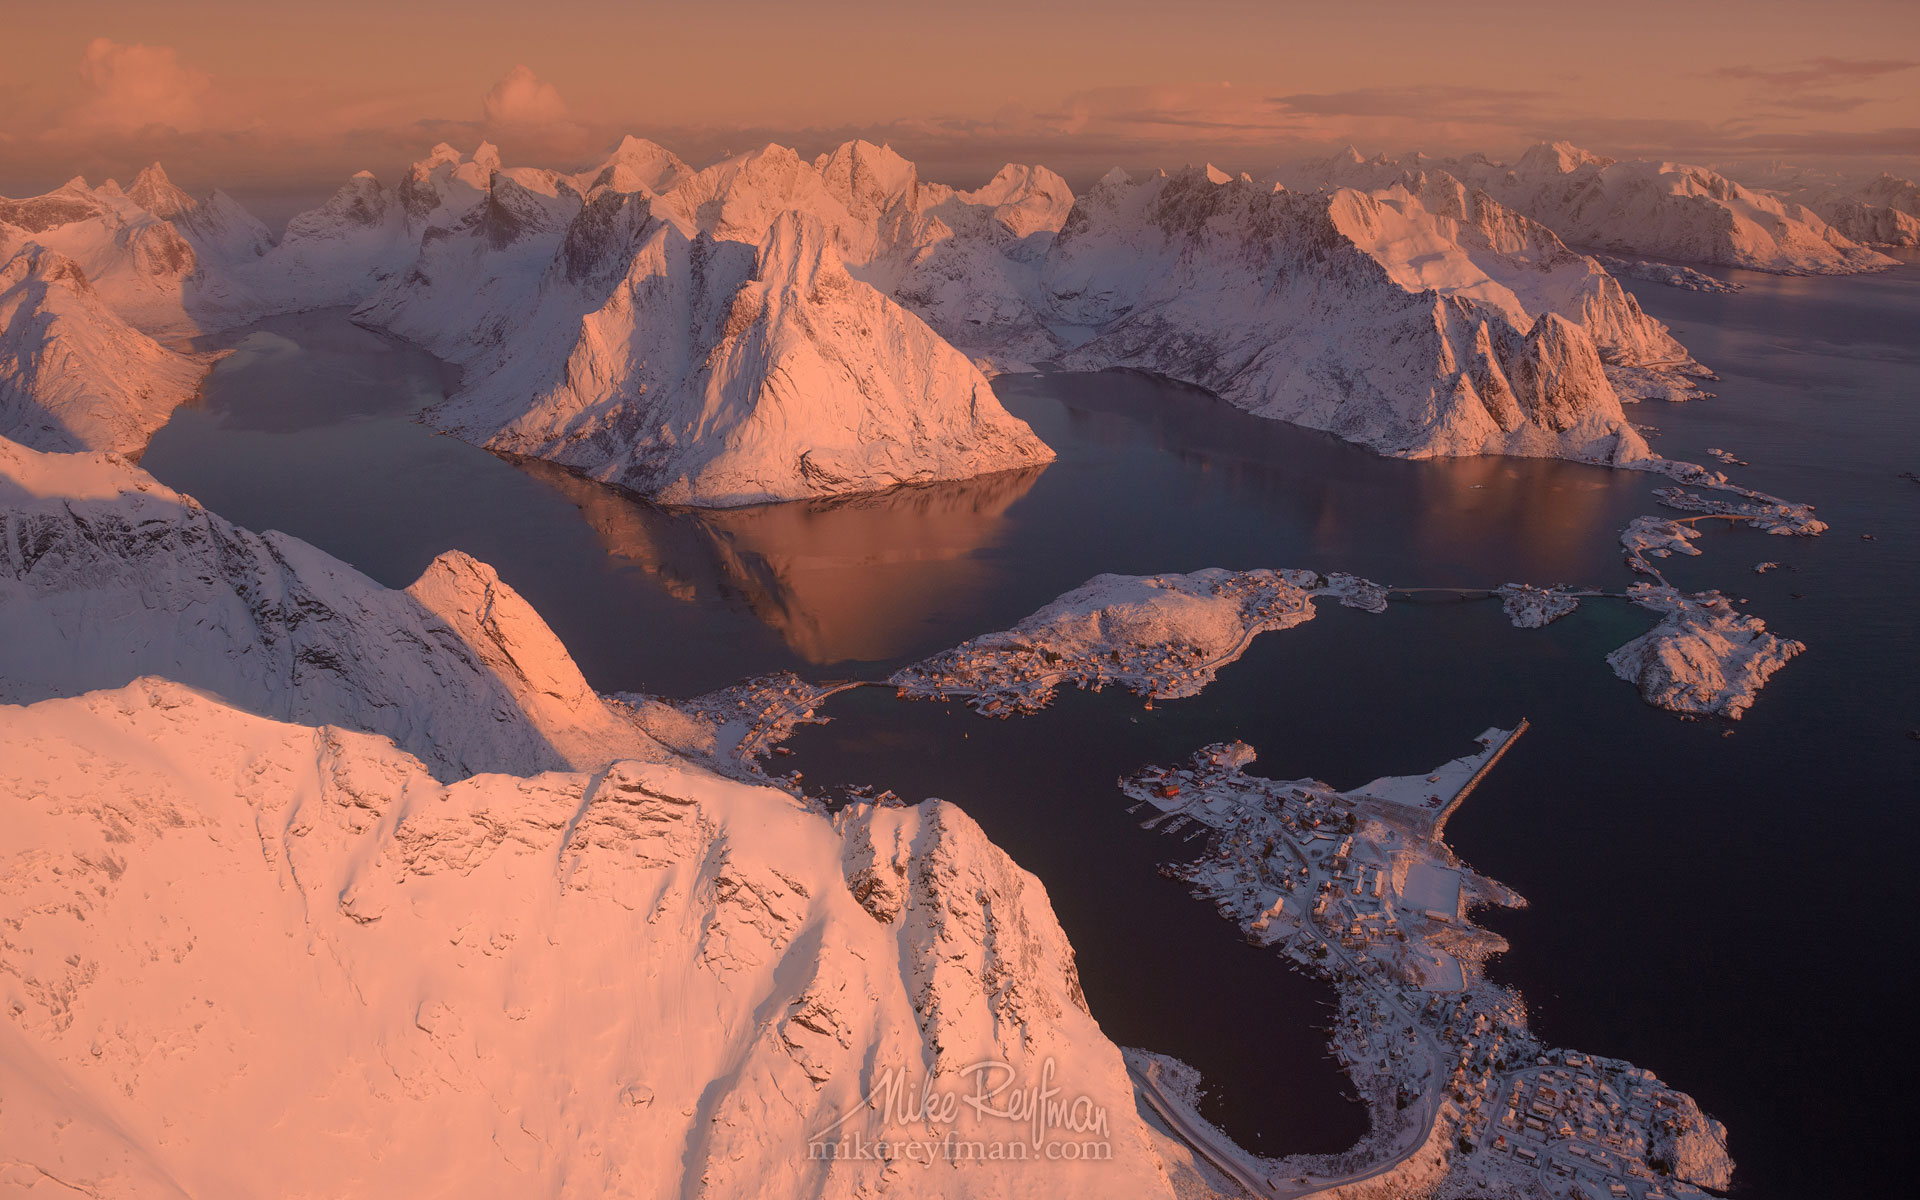 Aerial view of Lofoten archipelago, Olstinden mountain peak and fishing village of Reine at sunrise. Moskenesoya Island, Lofoten archipelago, Norway LF-MRD1E1480 - Lofoten Archipelago in Winter, Arctic Norway - Mike Reyfman Photography